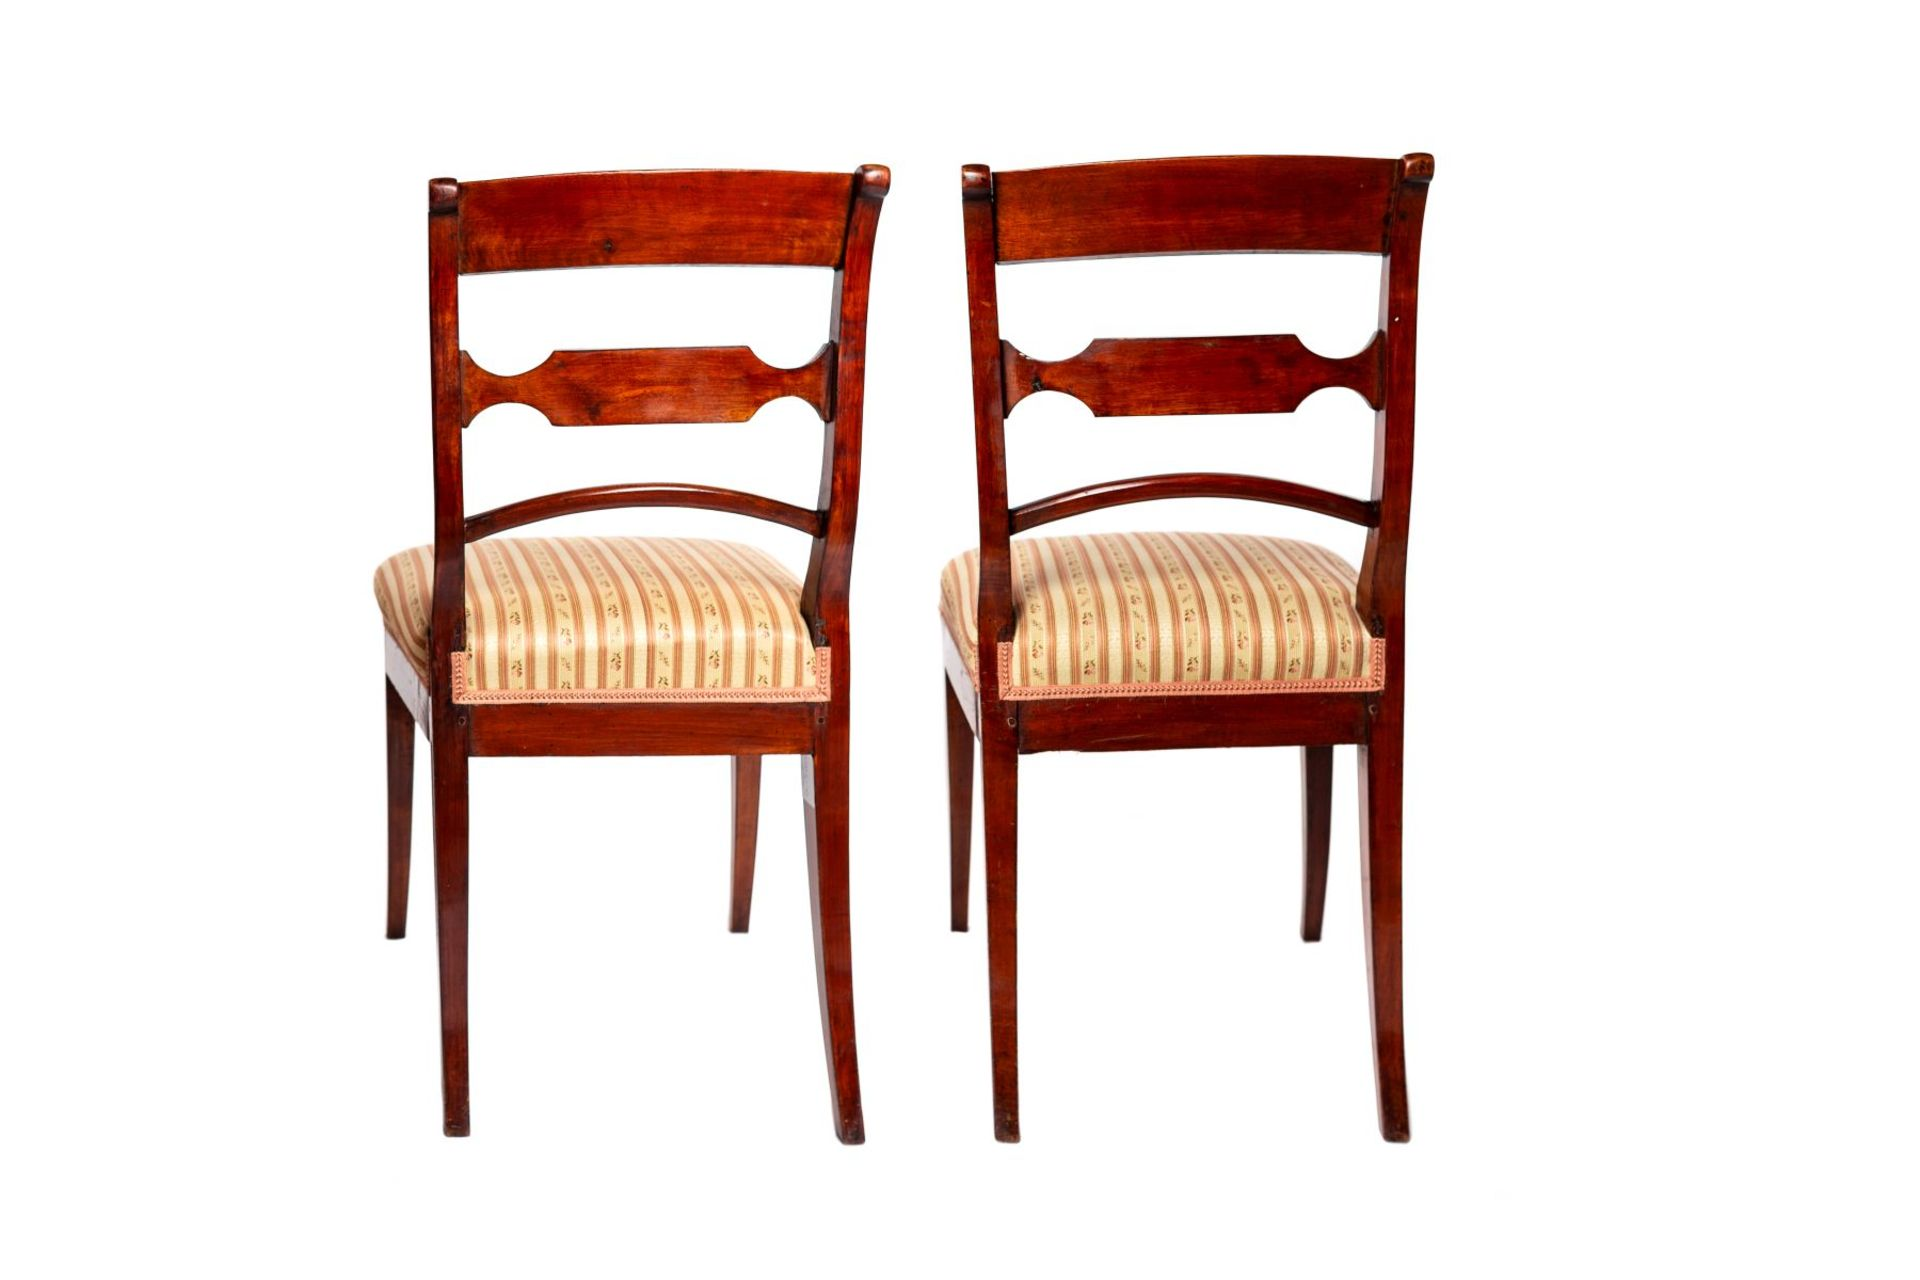 Two Biedermeier chairs - Image 3 of 4